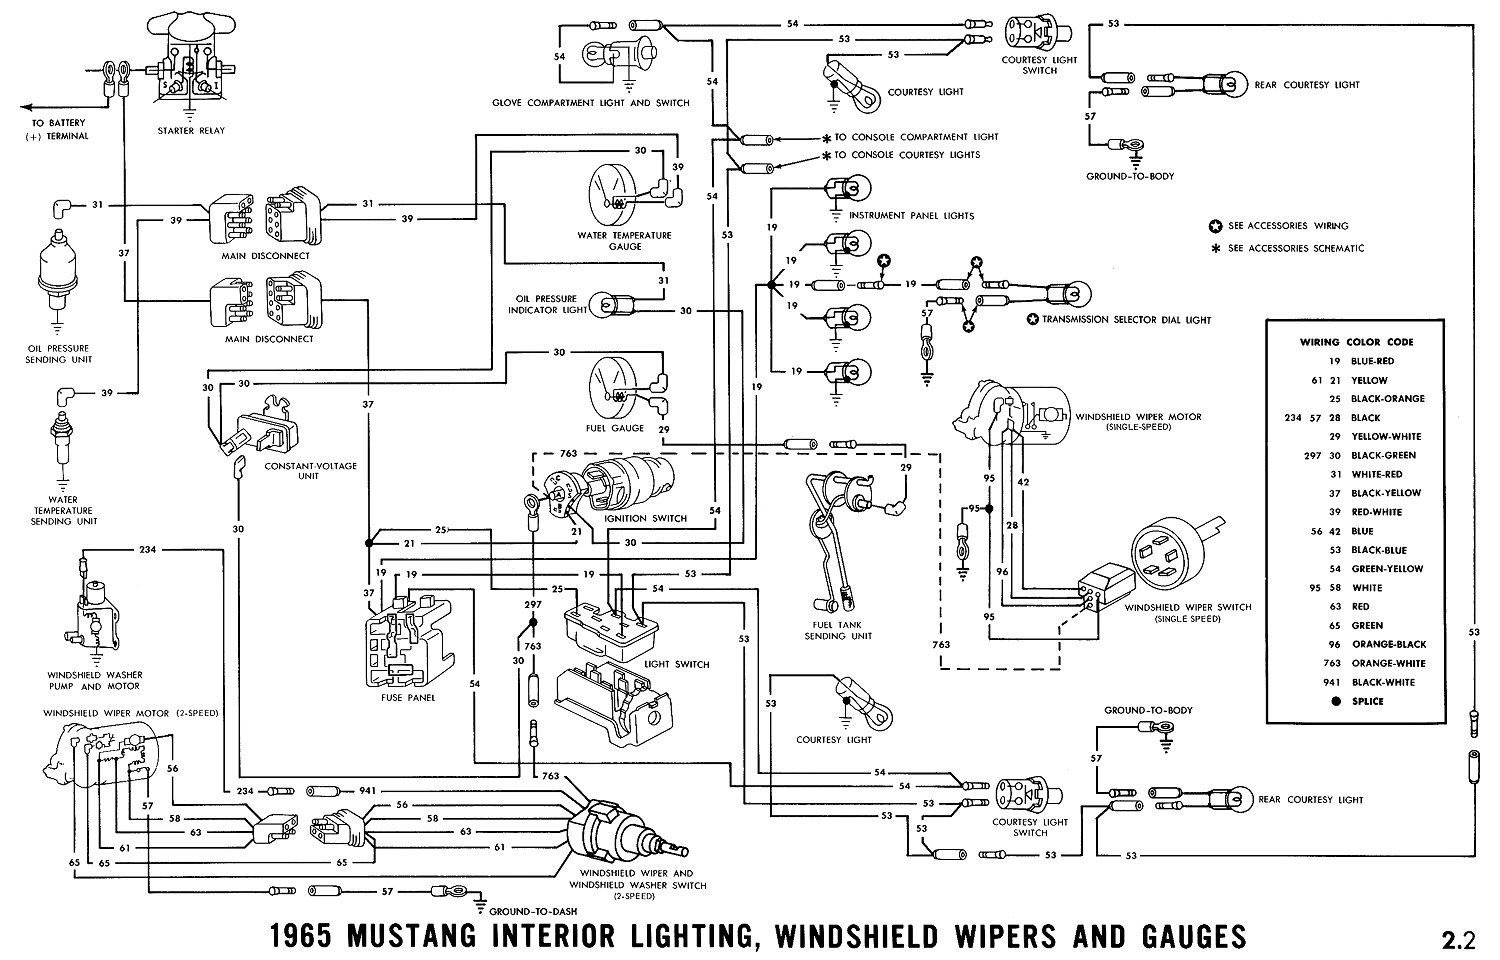 1965 Mustang Wiring Diagrams Average Joe Restoration. Oil Pressure. Ford. 1966 Ford Mustang Starter Relay Wiring At Scoala.co